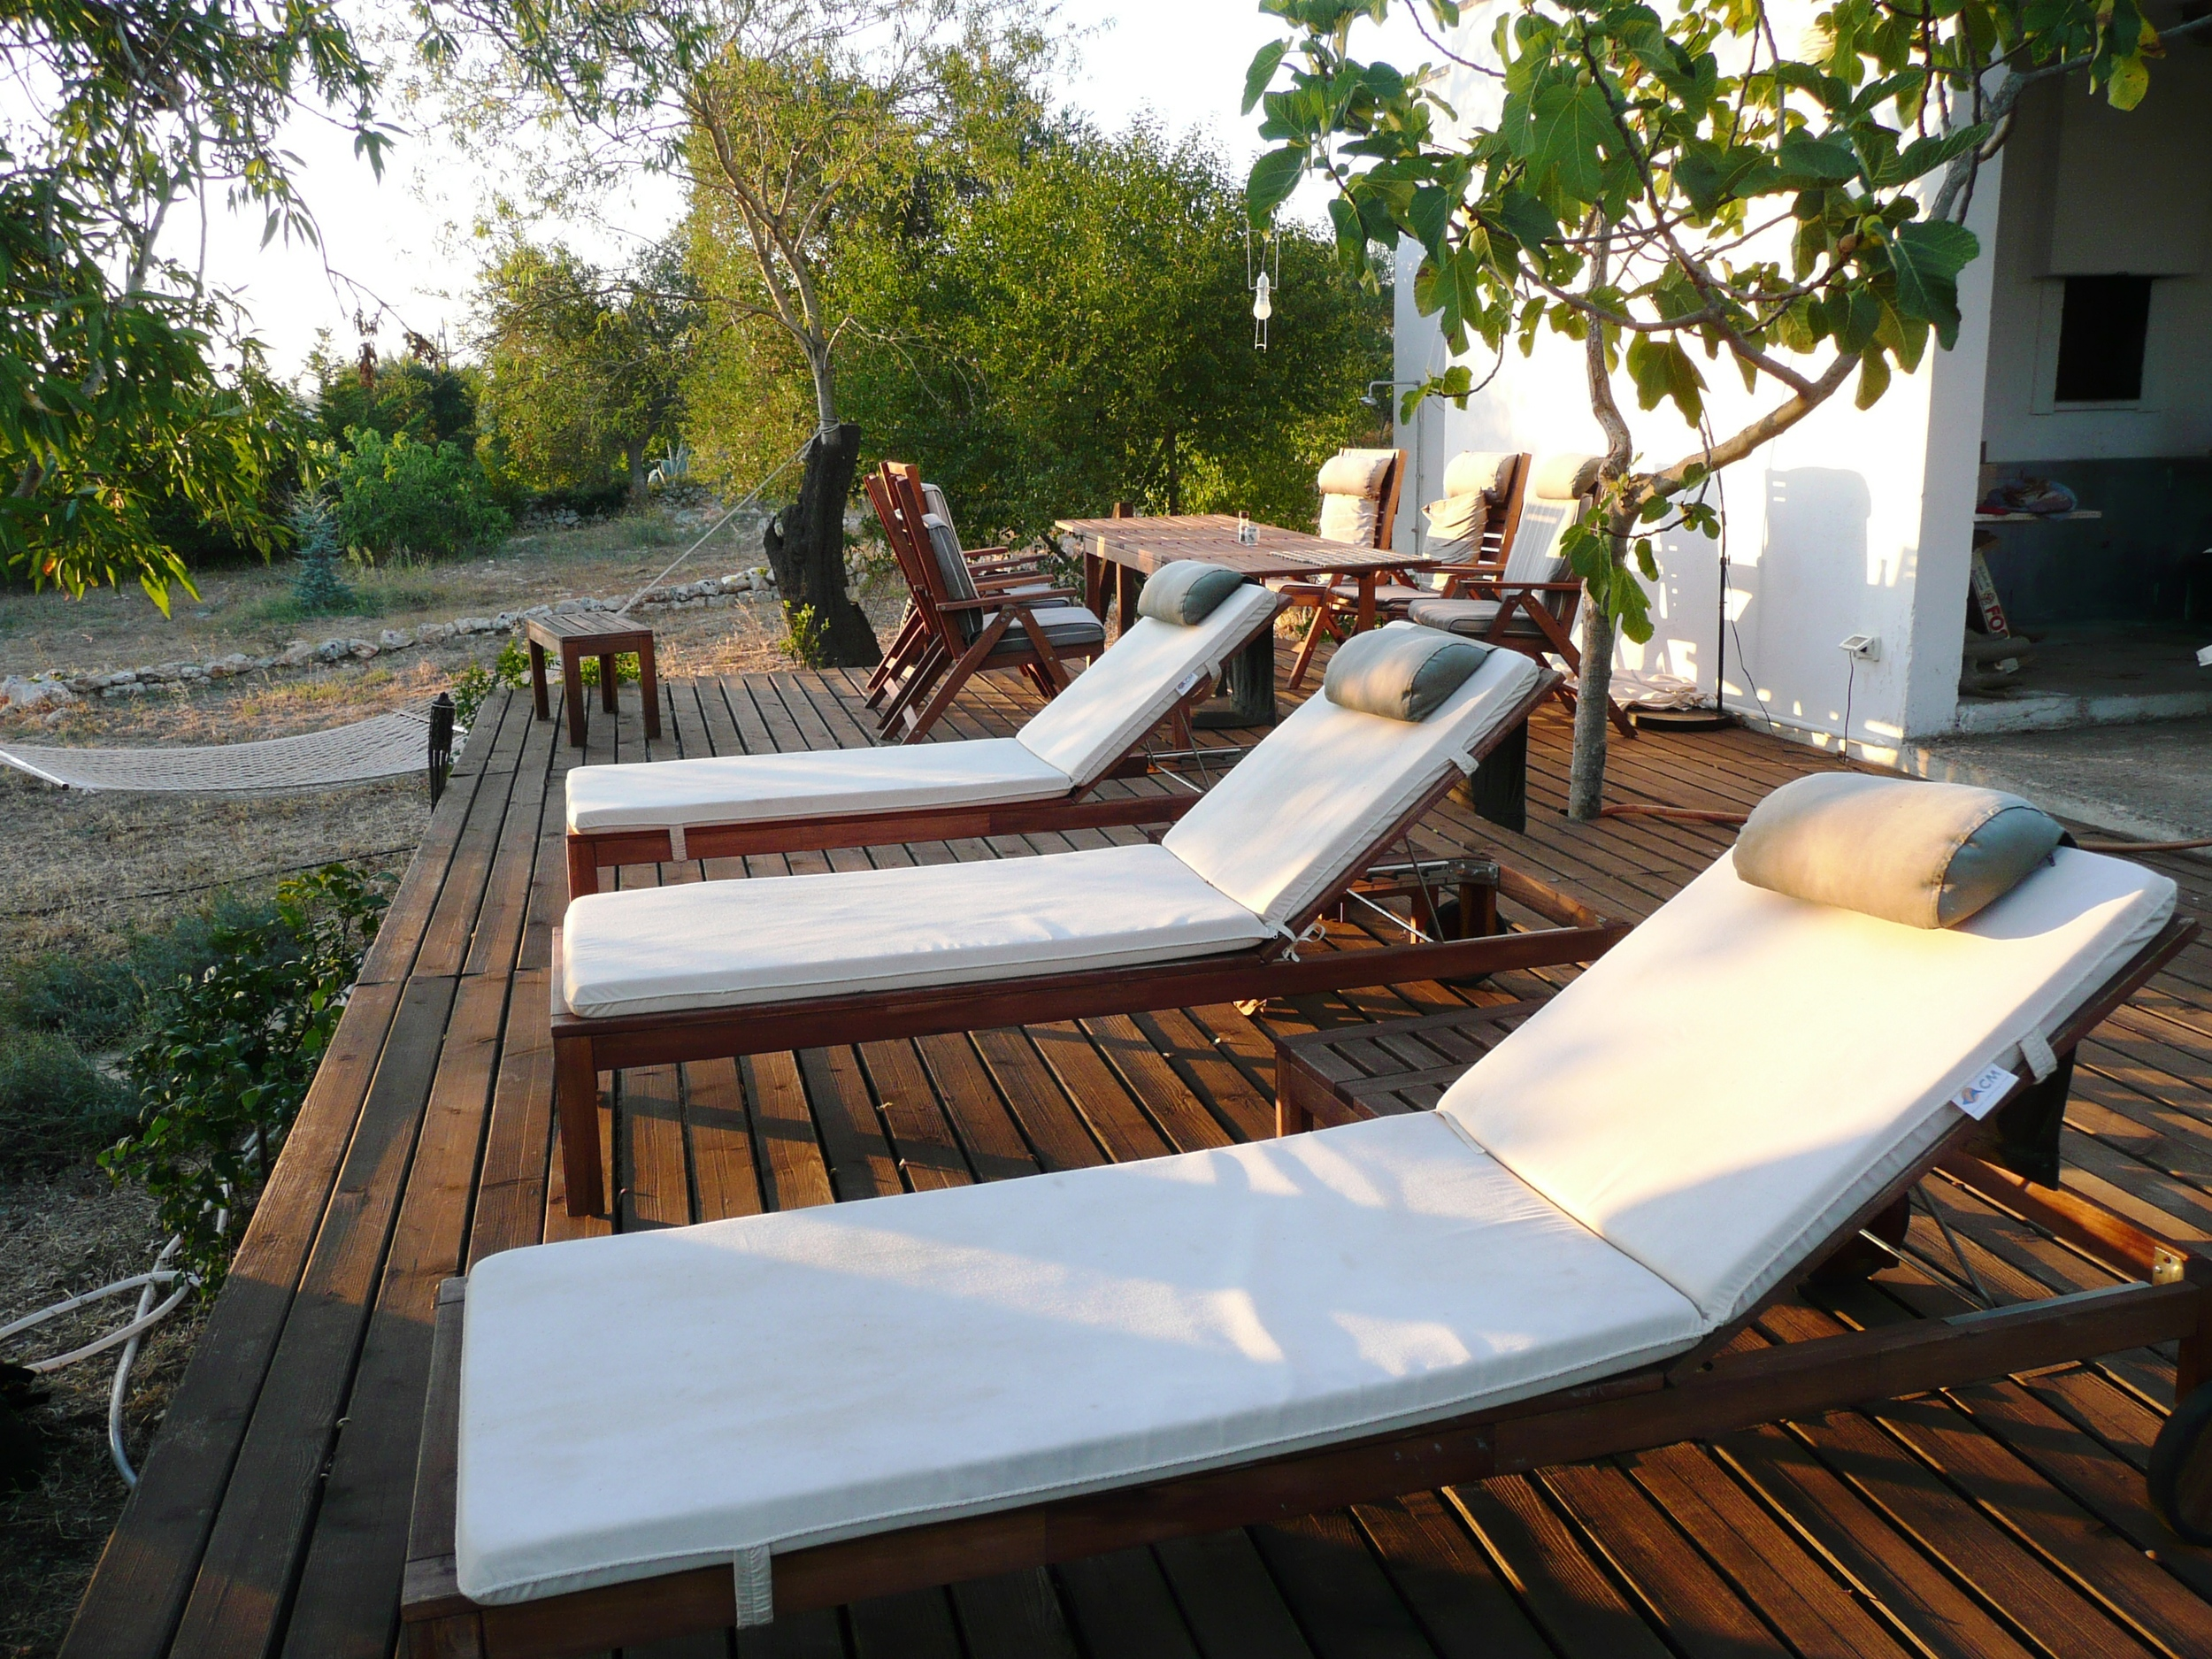 comfortable deck loungers